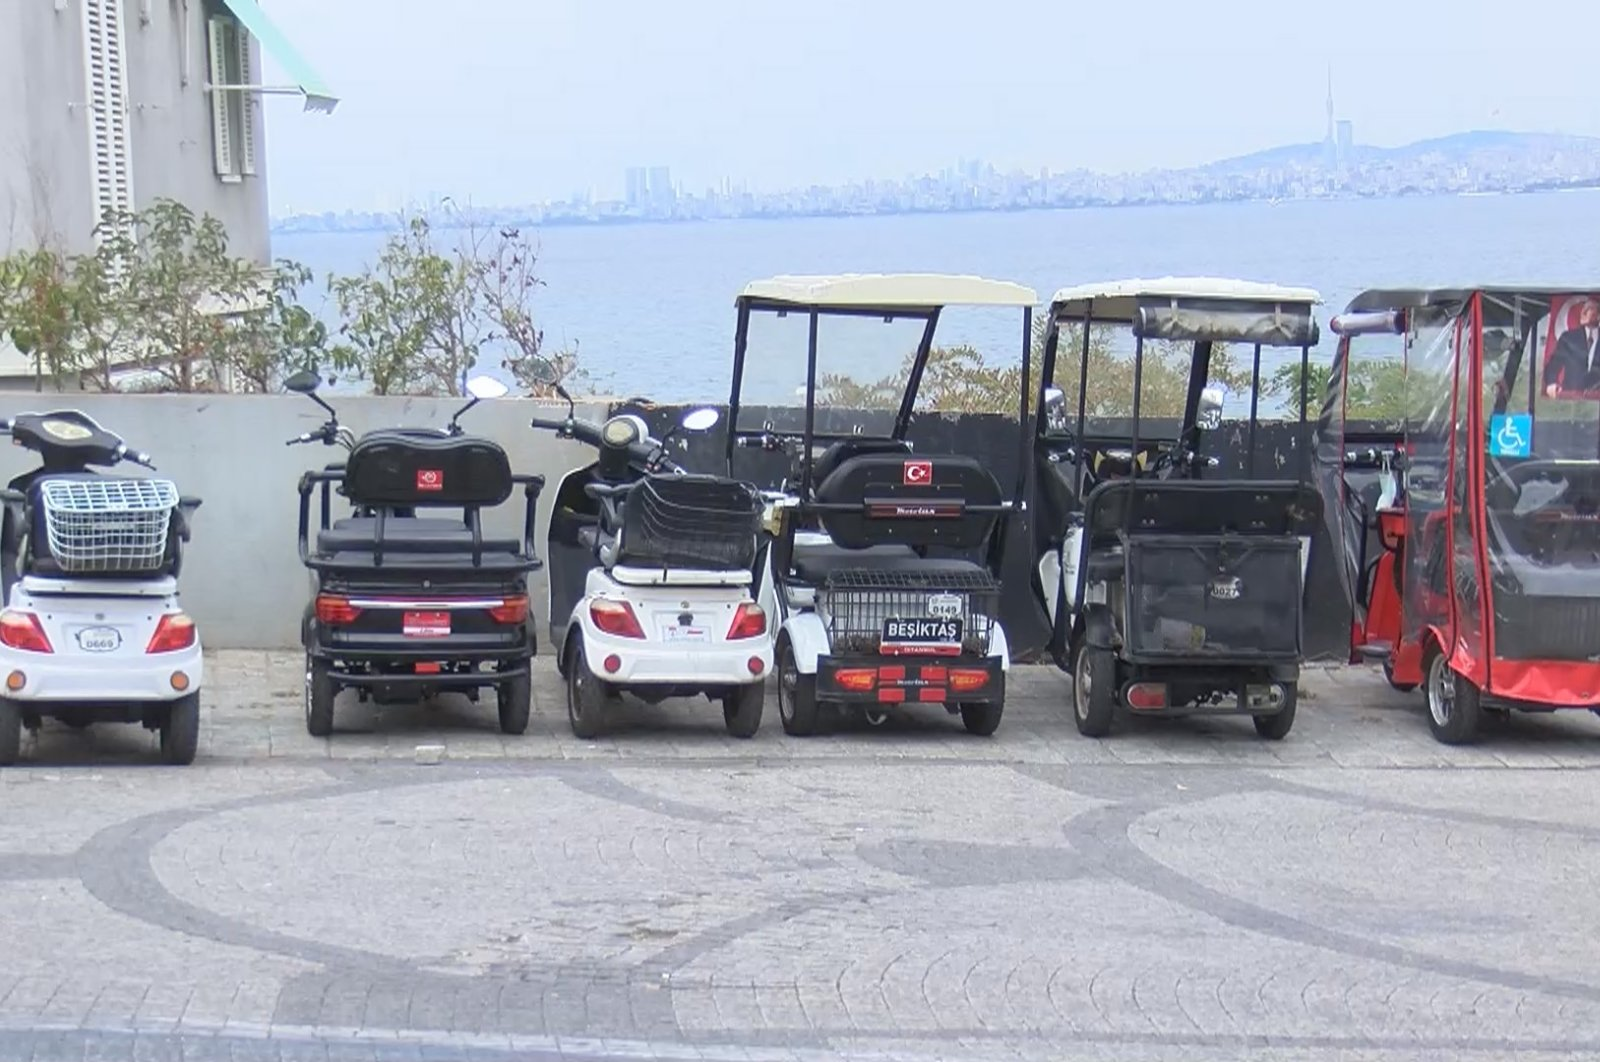 A view of battery electric vehicles parked in Büyükada, in Istanbul, Turkey, Sept. 23, 2021. (DHA Photo)